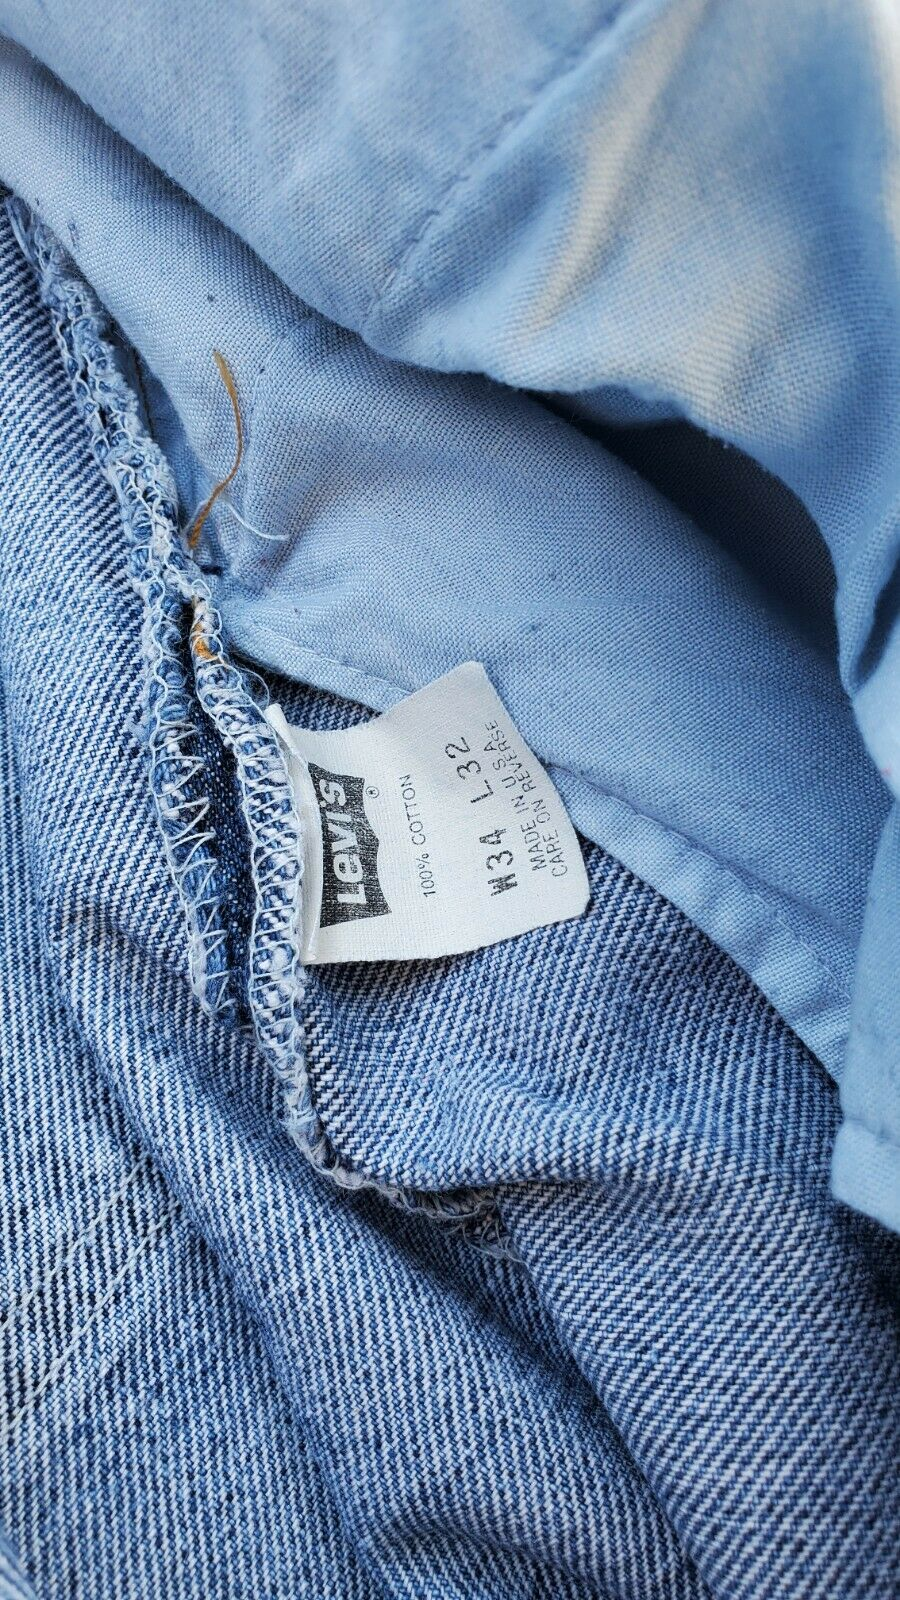 levis 560 34x32.made In Usa - image 6